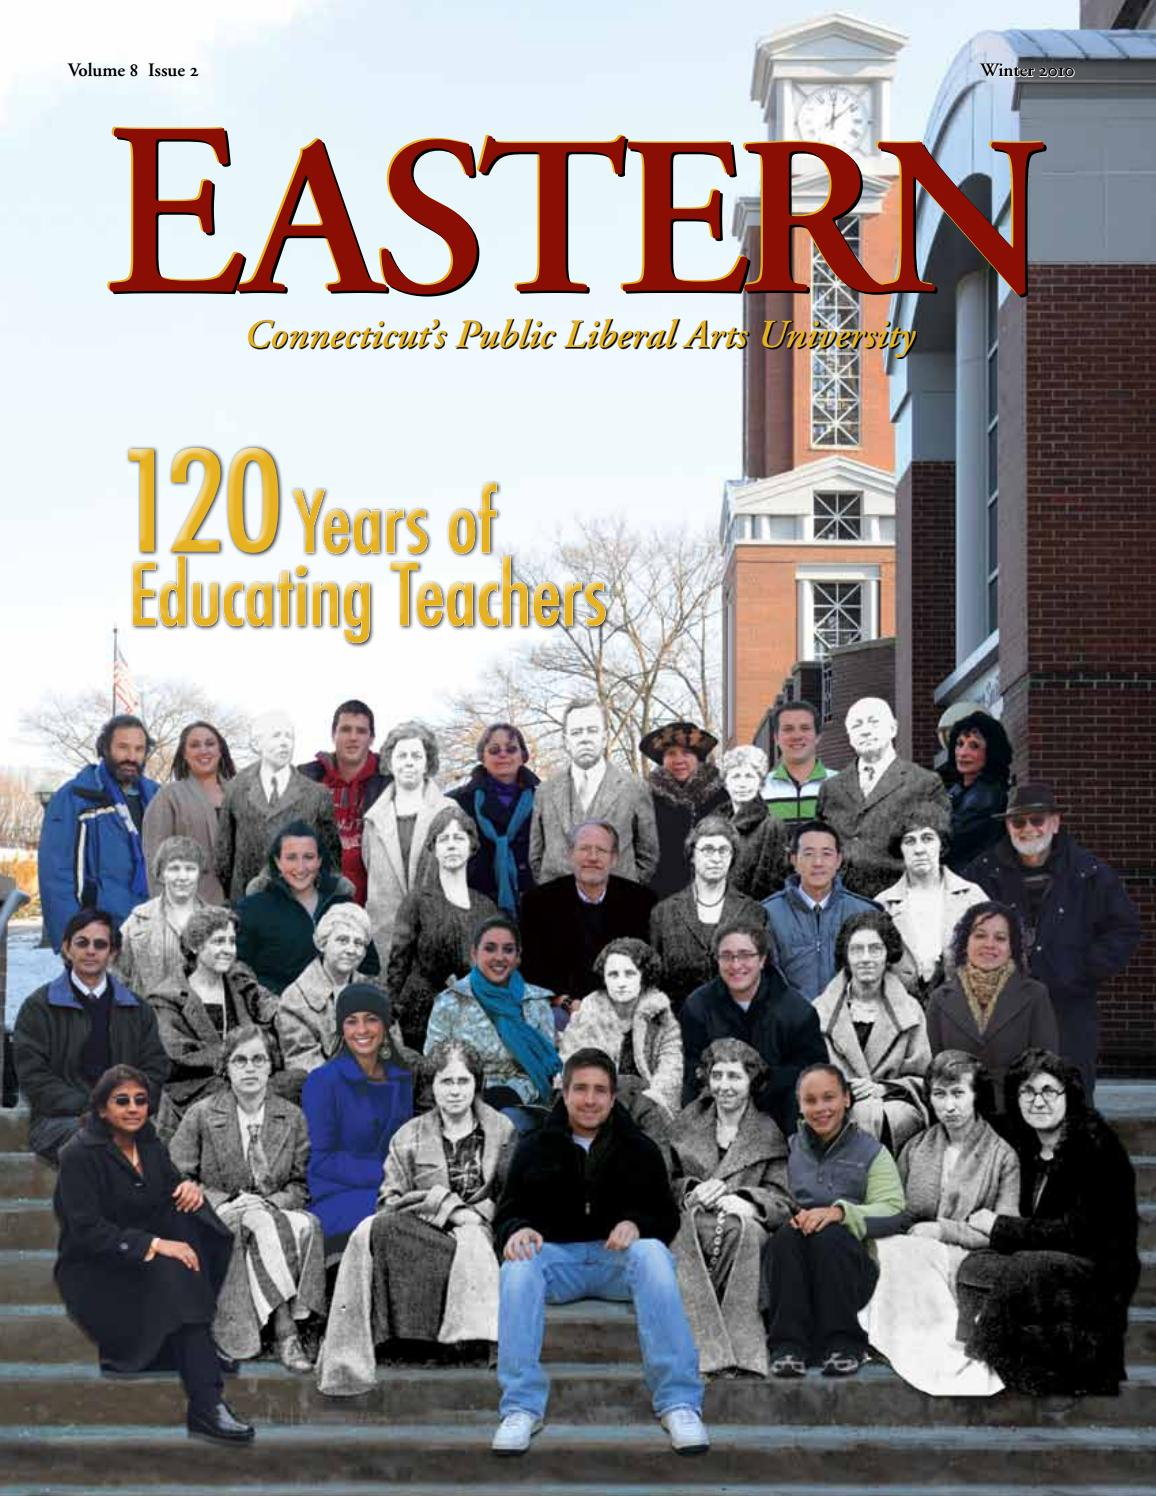 Eastern Magazine Winter 2010 By Easternctstateuniversity Issuu Manzone Mens Top Gifford Blue